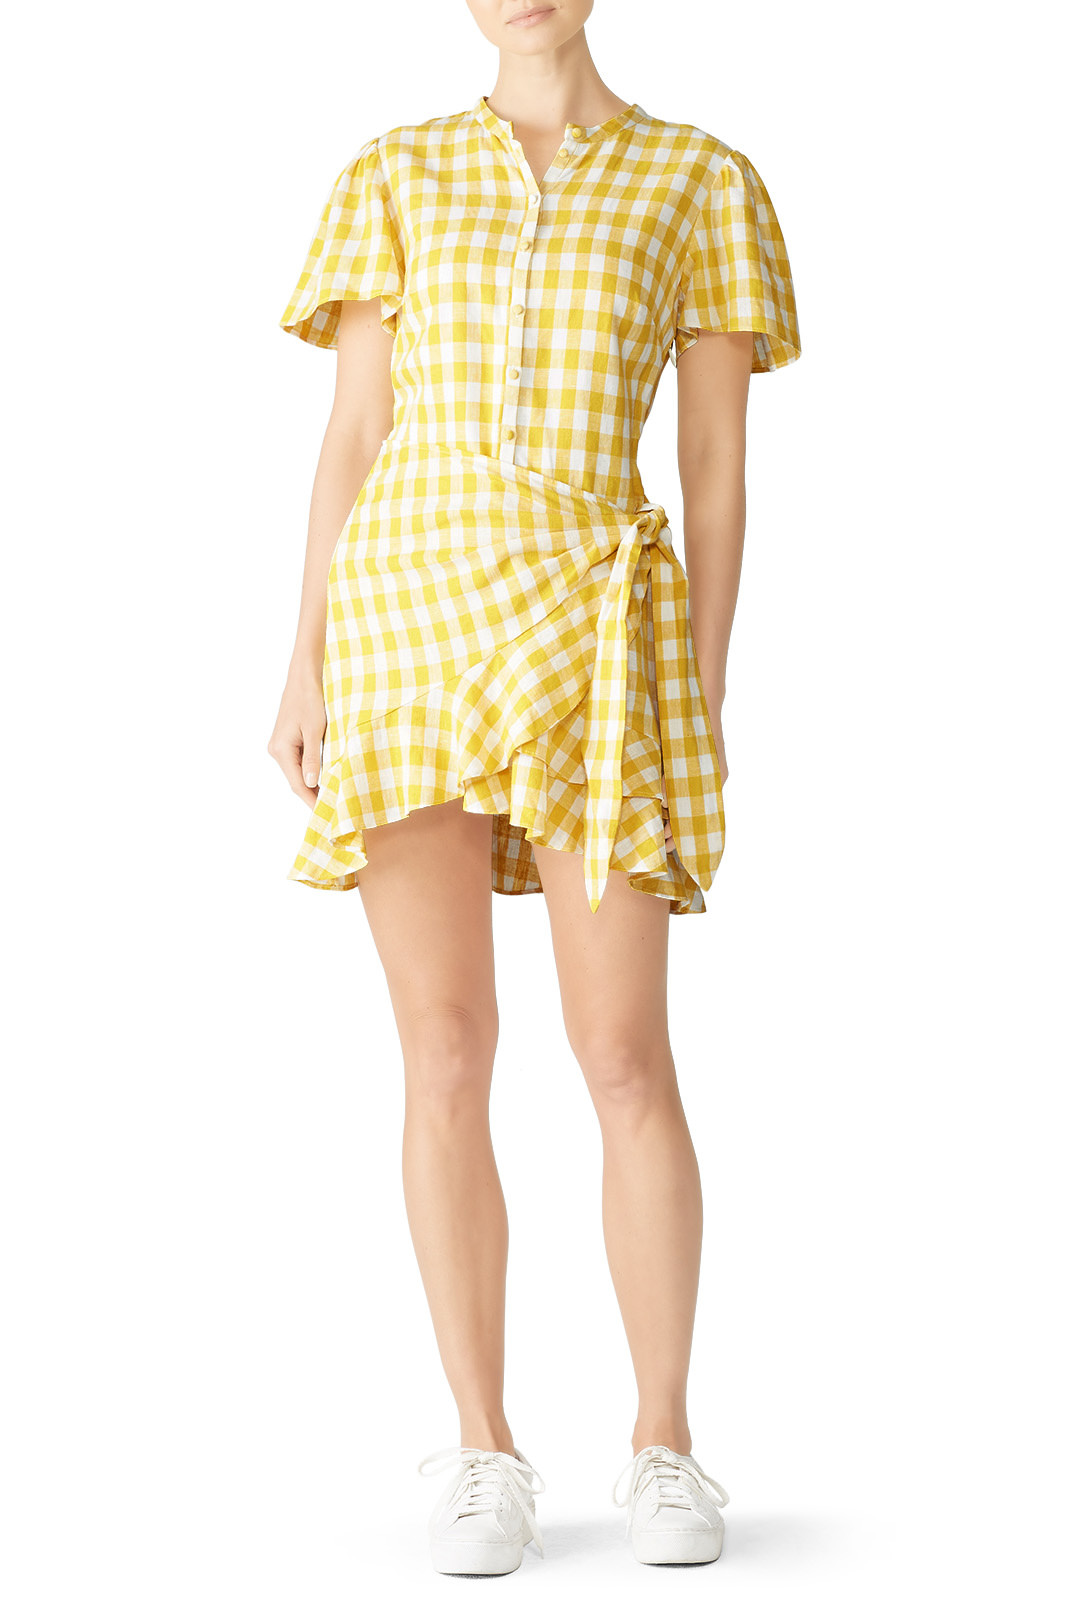 The Jetset Diaries London Calling Mini Dress - Cute and perfect for boozy brunch on Sunday